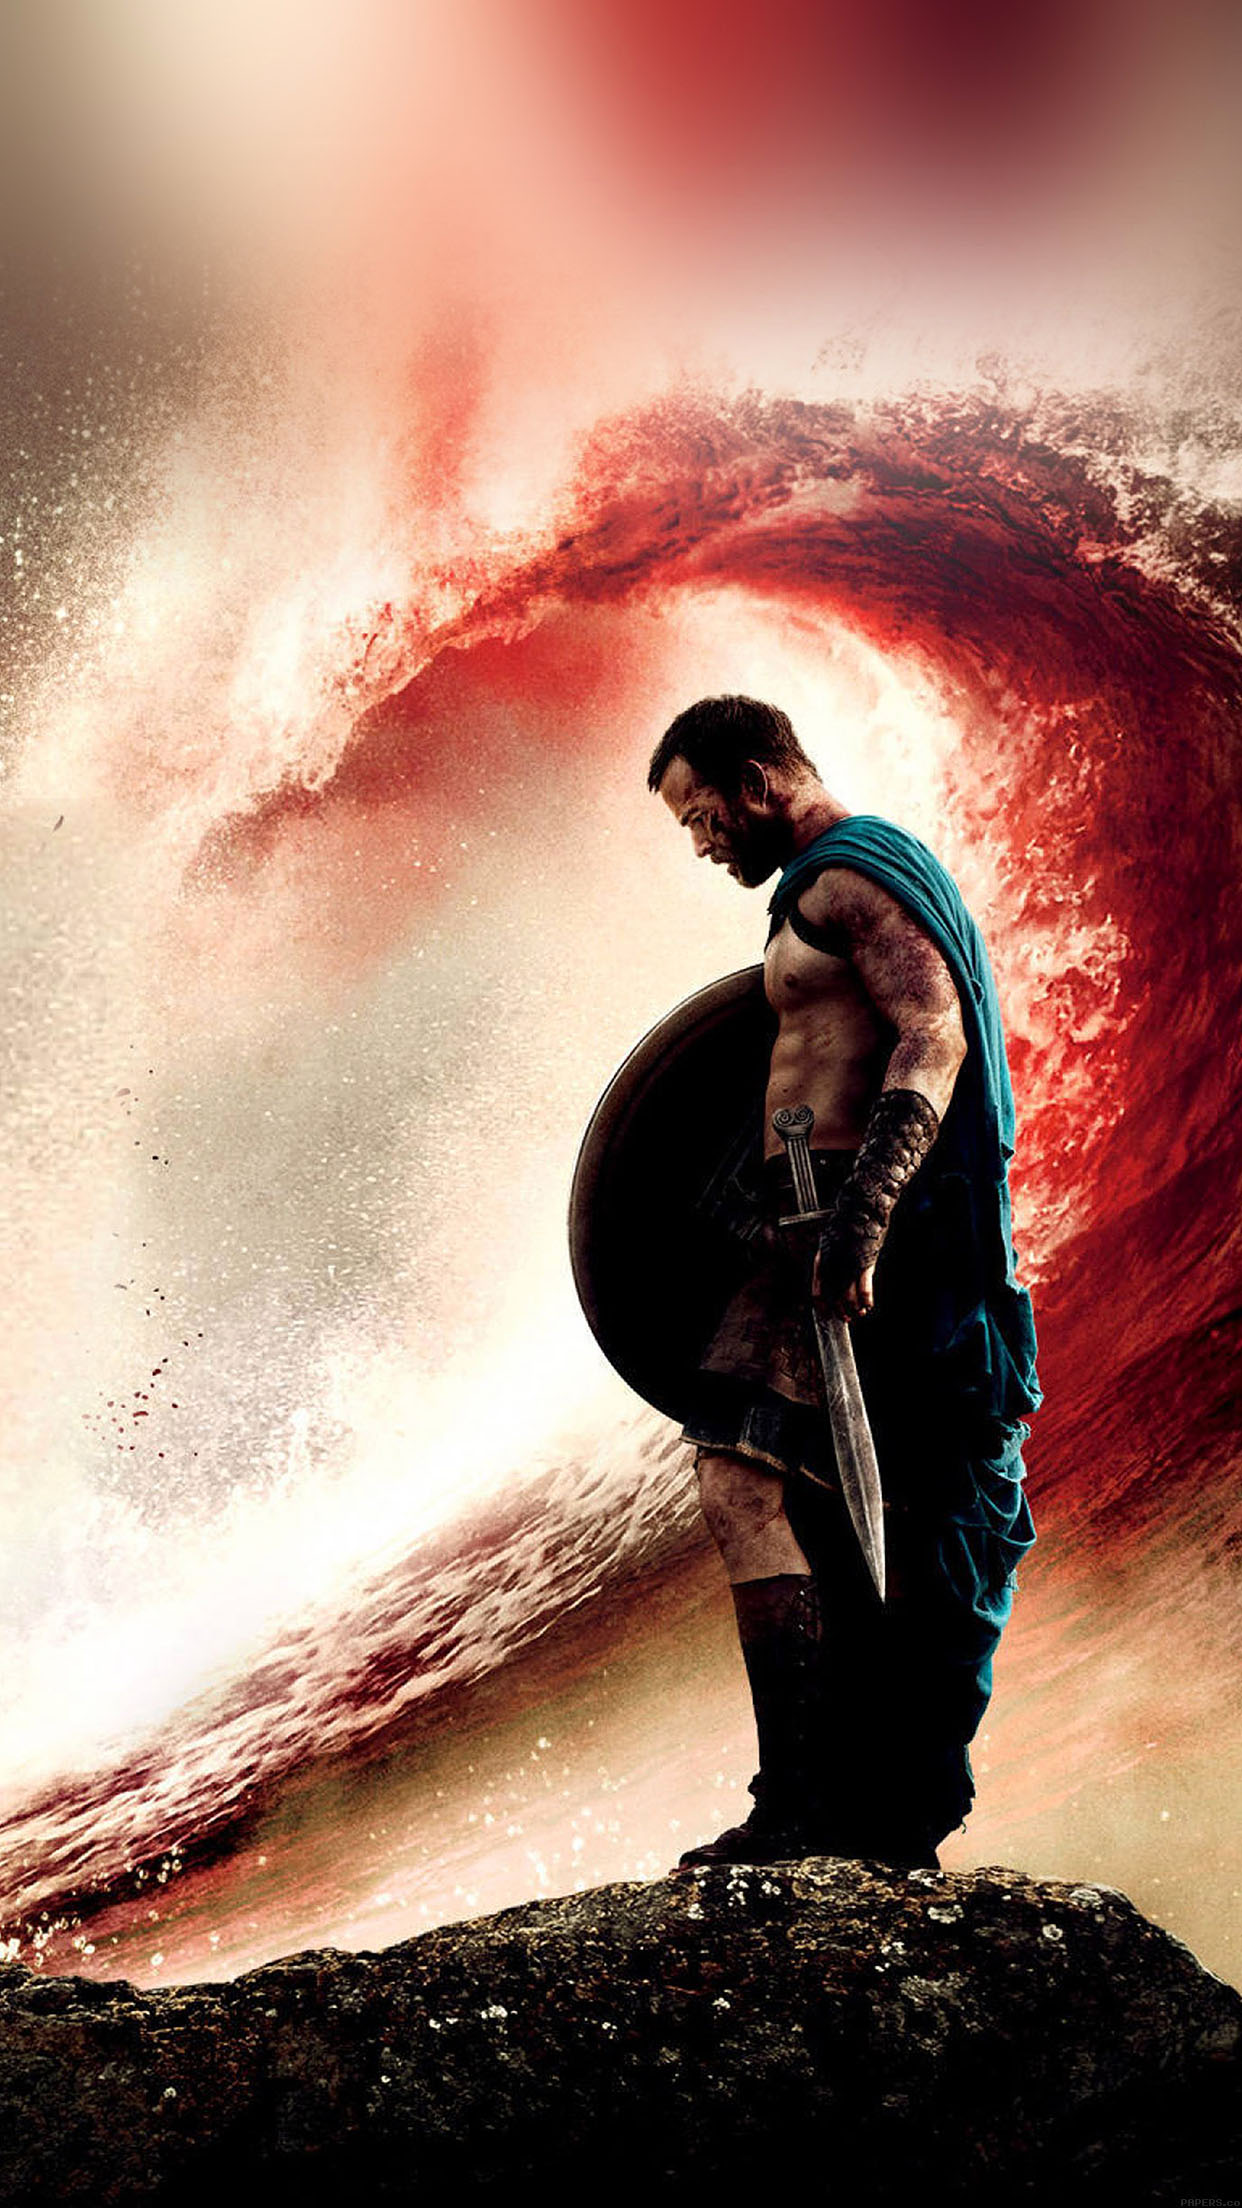 Cute Nature Wallpaper  Ha84 Wallpaper 300 Rise Of An Empire Wave Film Papers Co